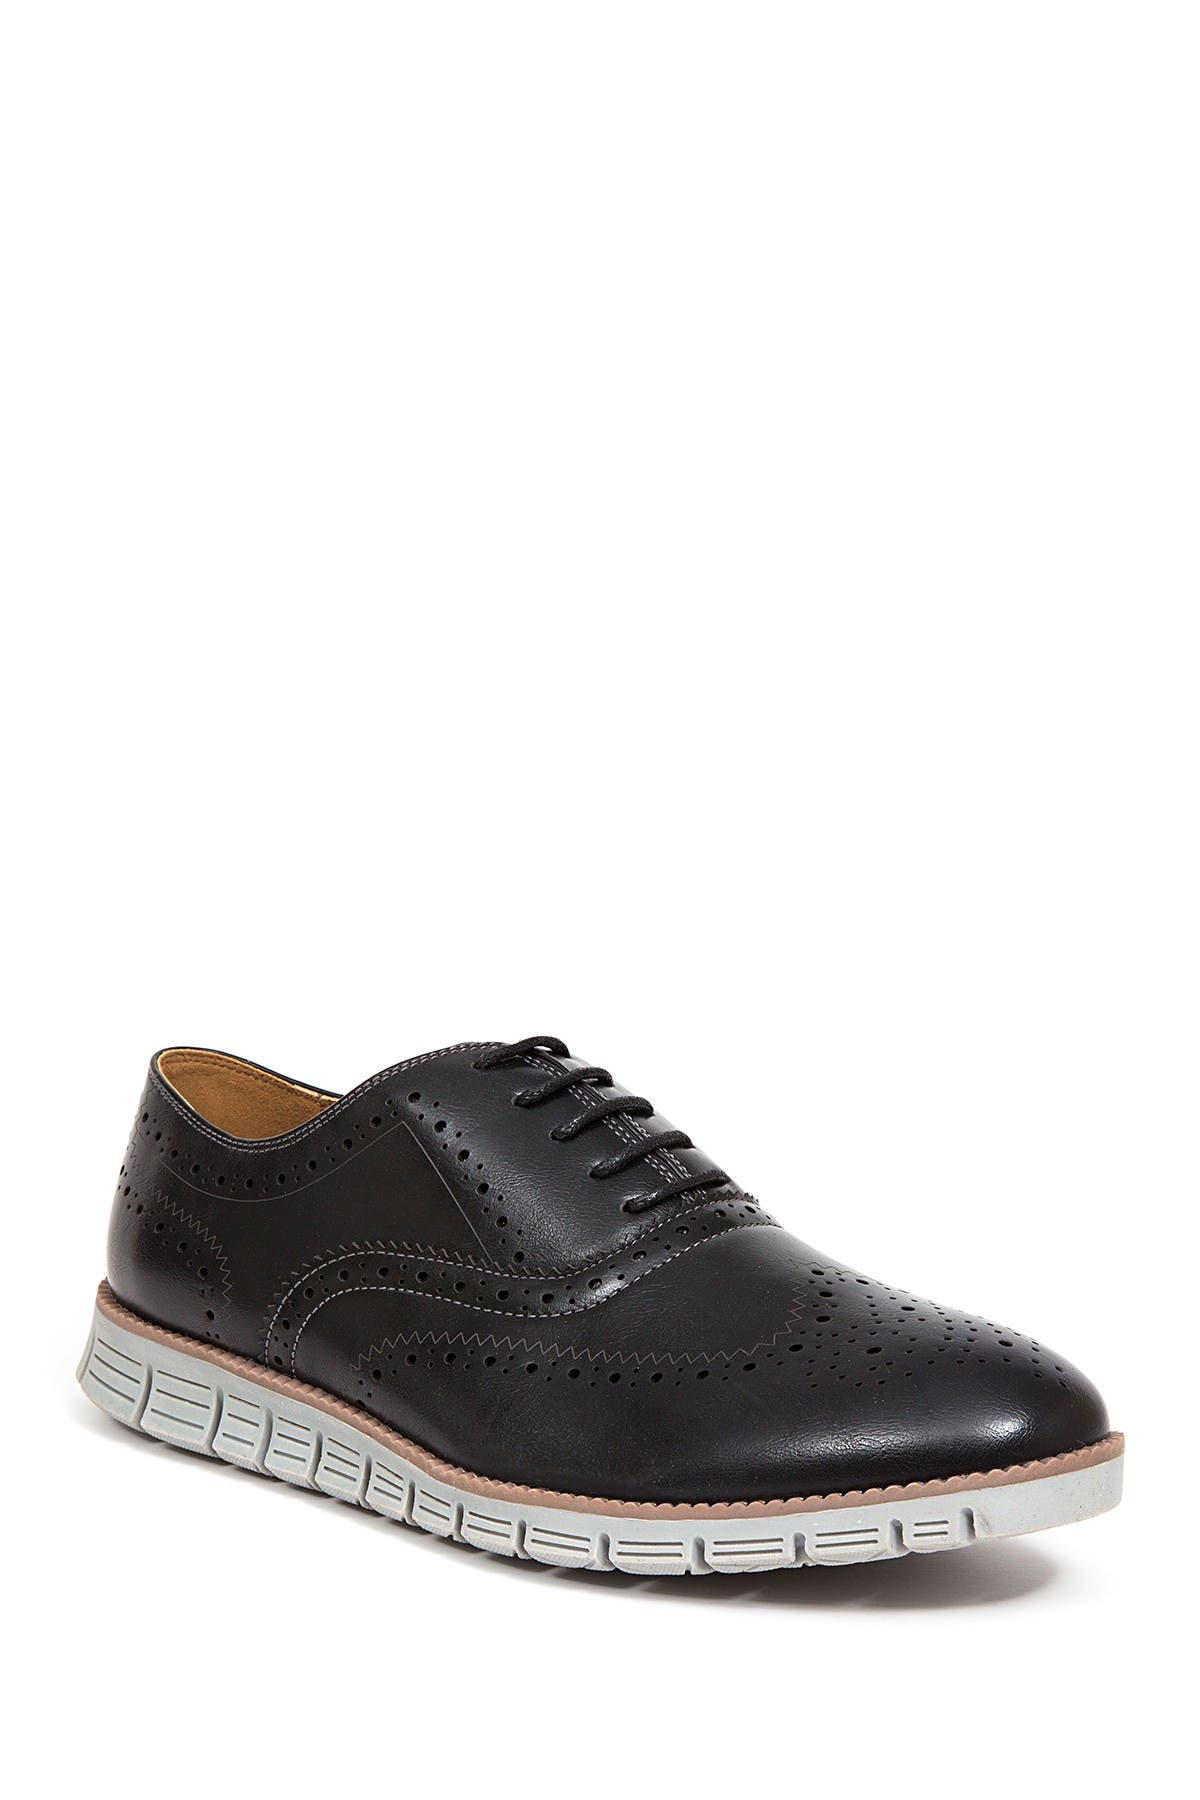 Image of Deer Stags Benton Jr. Classic Lace-Up Wingtip Hybrid Sneaker Dress Comfort Oxford